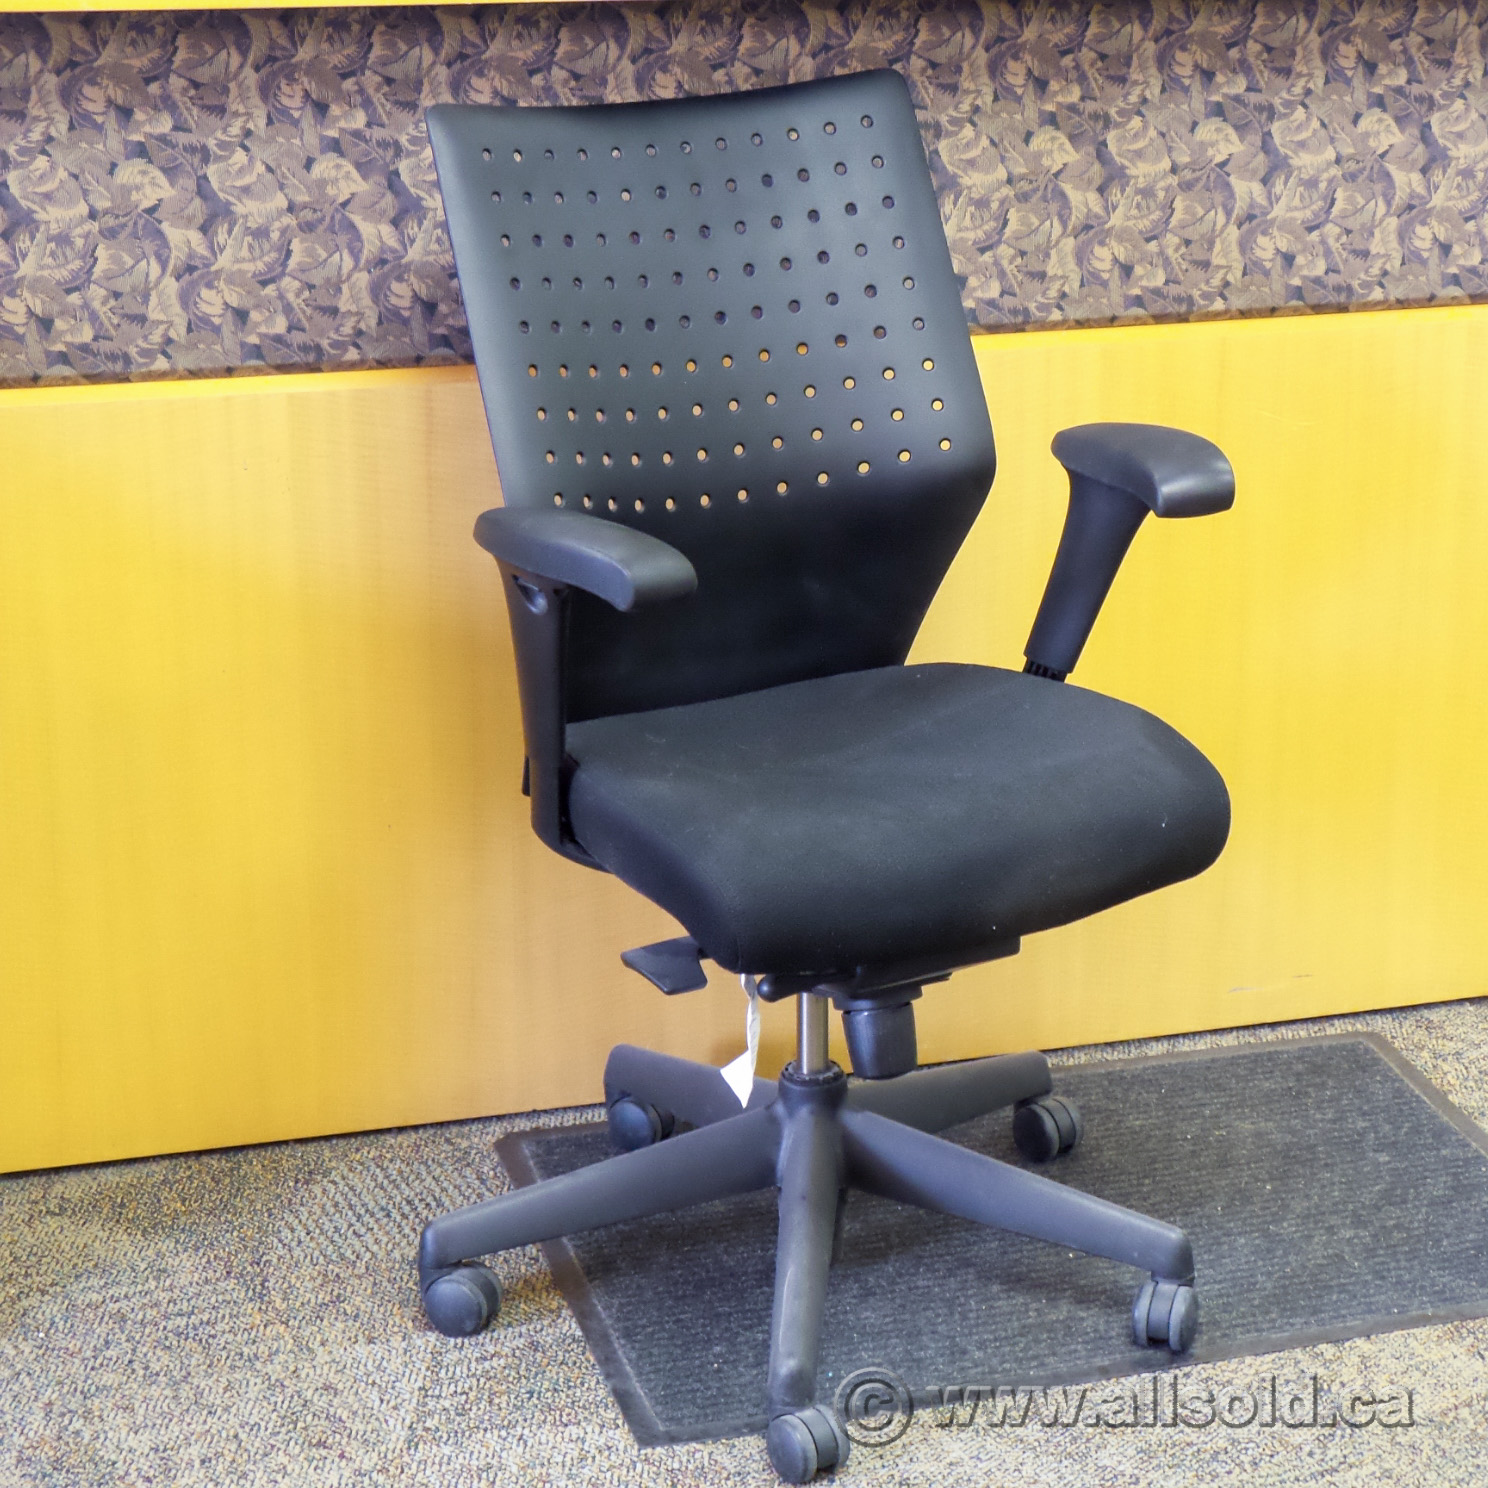 Admirable Keilhauer Tom 9561 Black Ergonomic Office Task Chair Grade Caraccident5 Cool Chair Designs And Ideas Caraccident5Info